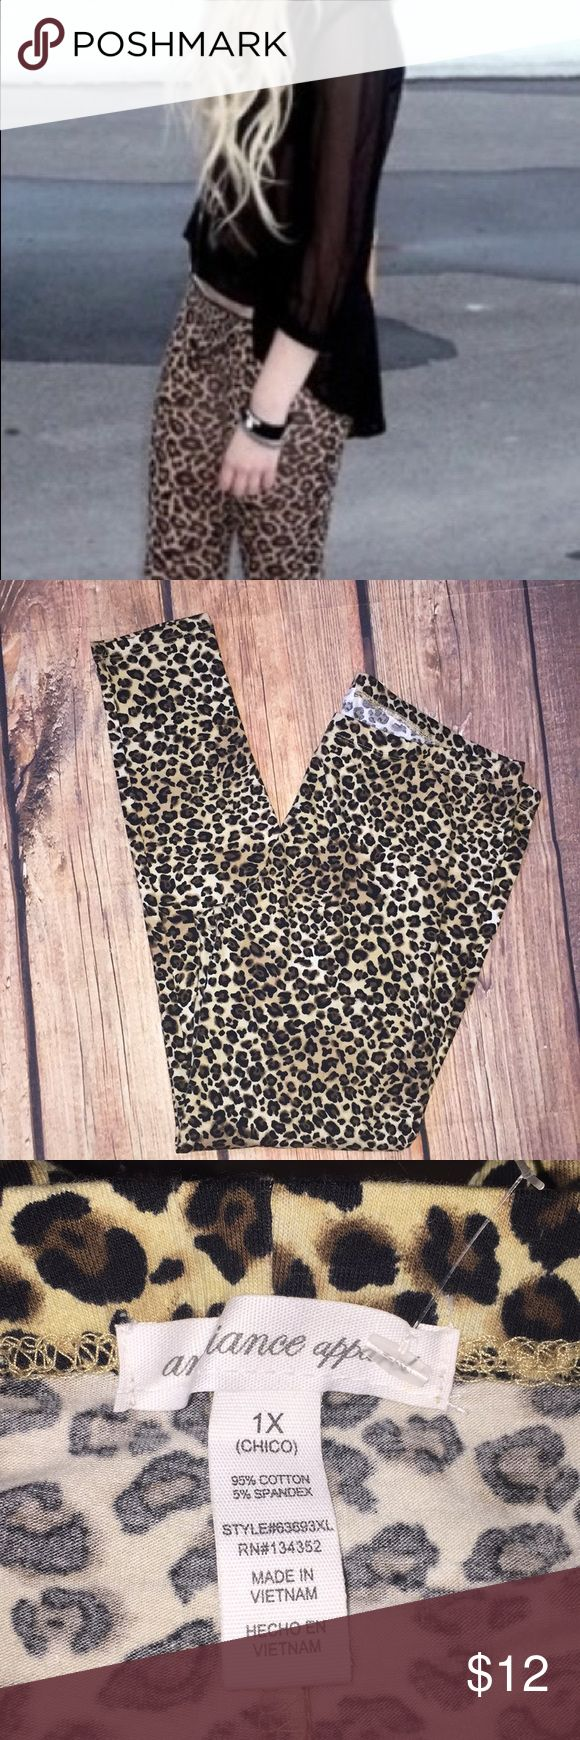 NEW AMBIANCE Cheetah Tights Leggings plus Sz 1X New, cheetah leopard tights leggings plus Sz 1X Ambiance Apparel Pants Leggings